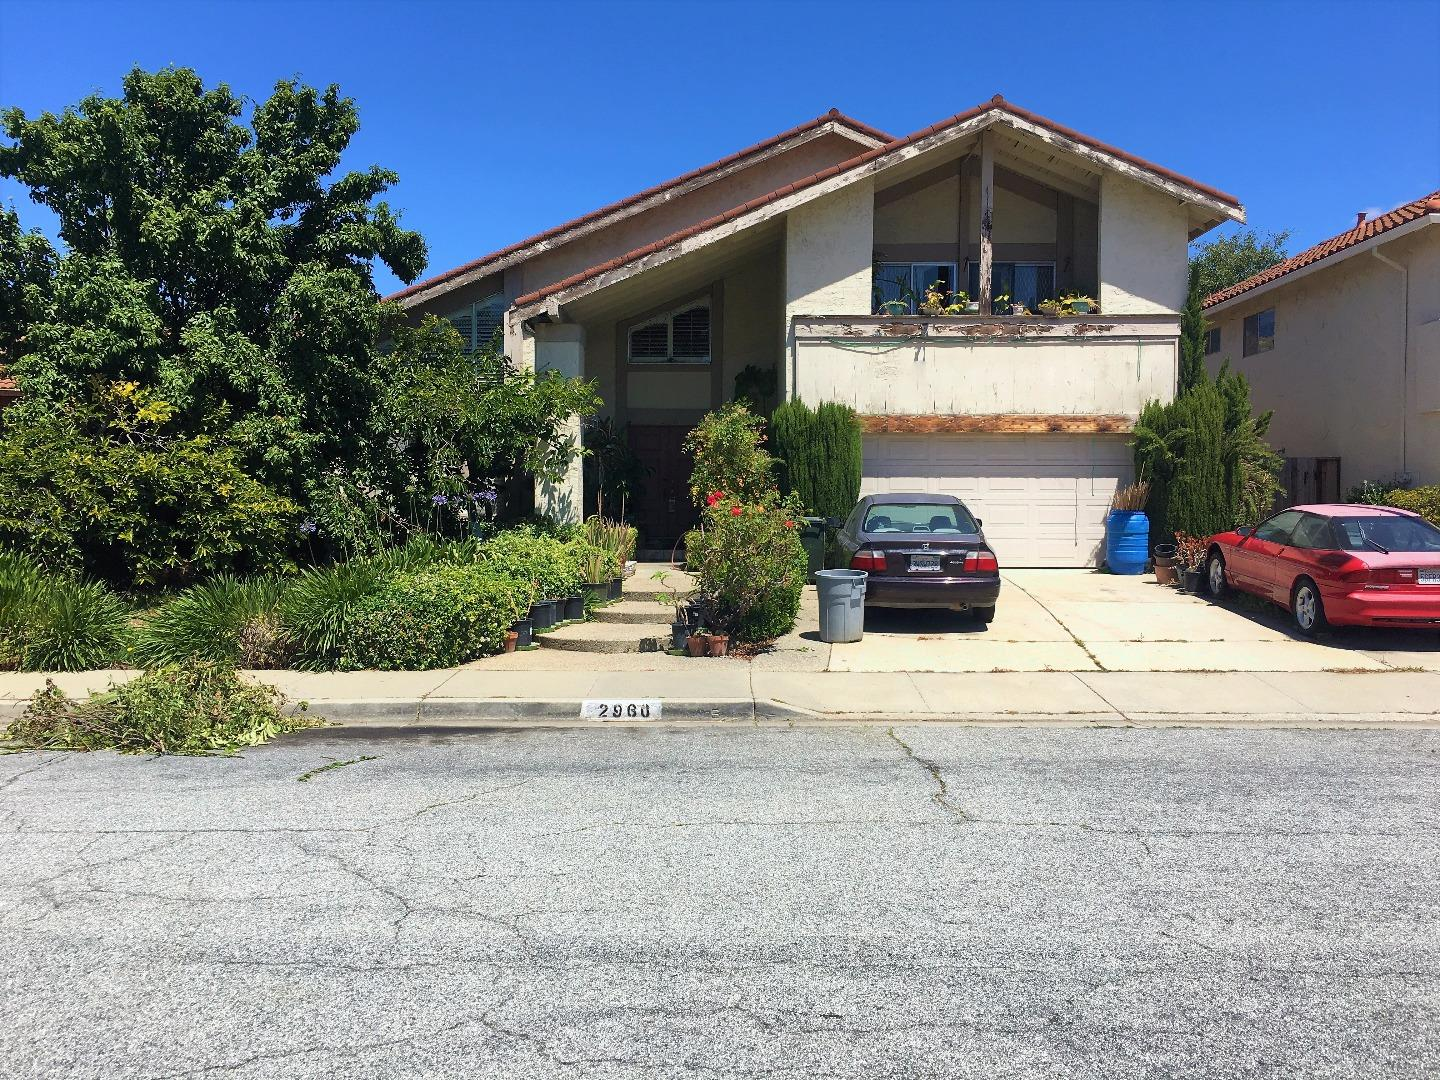 Maison unifamiliale pour l Vente à 2960 Davidwood Way San Jose, Californie 95148 États-Unis